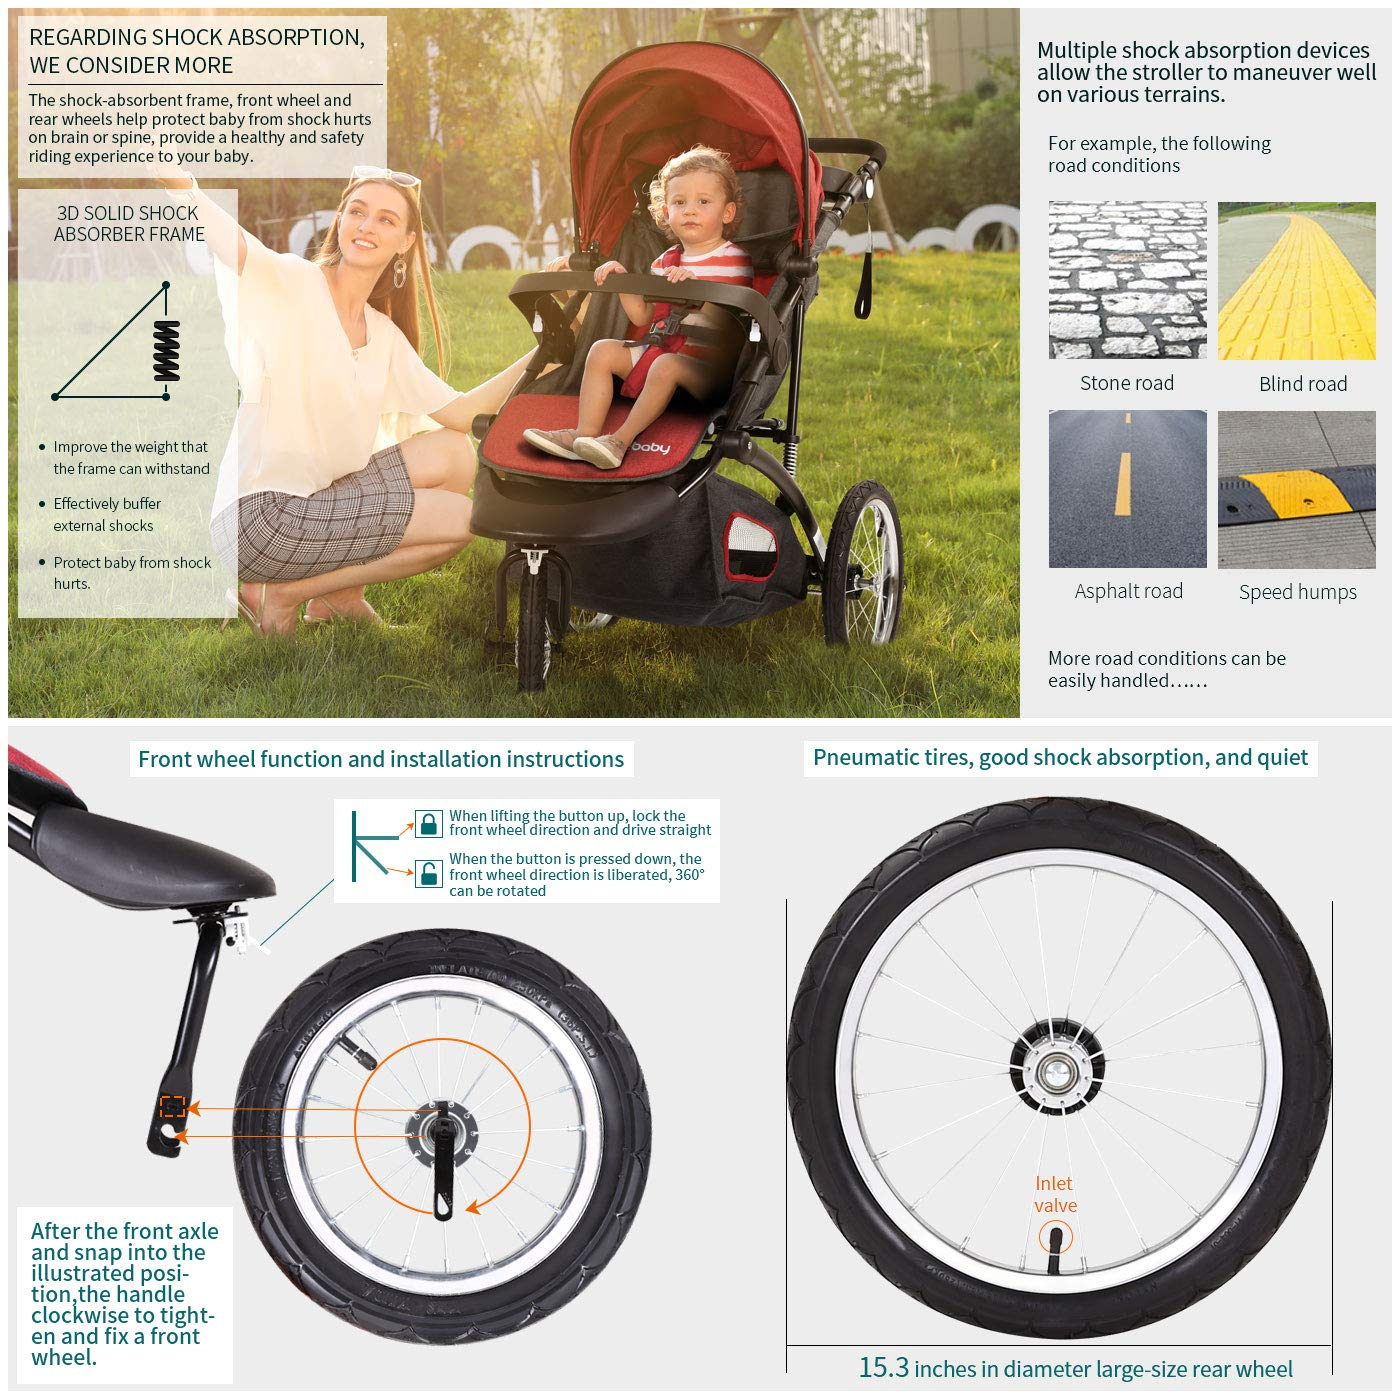 Jogging Stroller Fold City Baby Jogger Travel Citi Jog Strollers Single Toddler Baby Pram Jogging Compact Urban Ultralight Joggers Beby Carriage Pushchair Stroller Travel System by Cynebaby / HAIXIAO (Image #6)